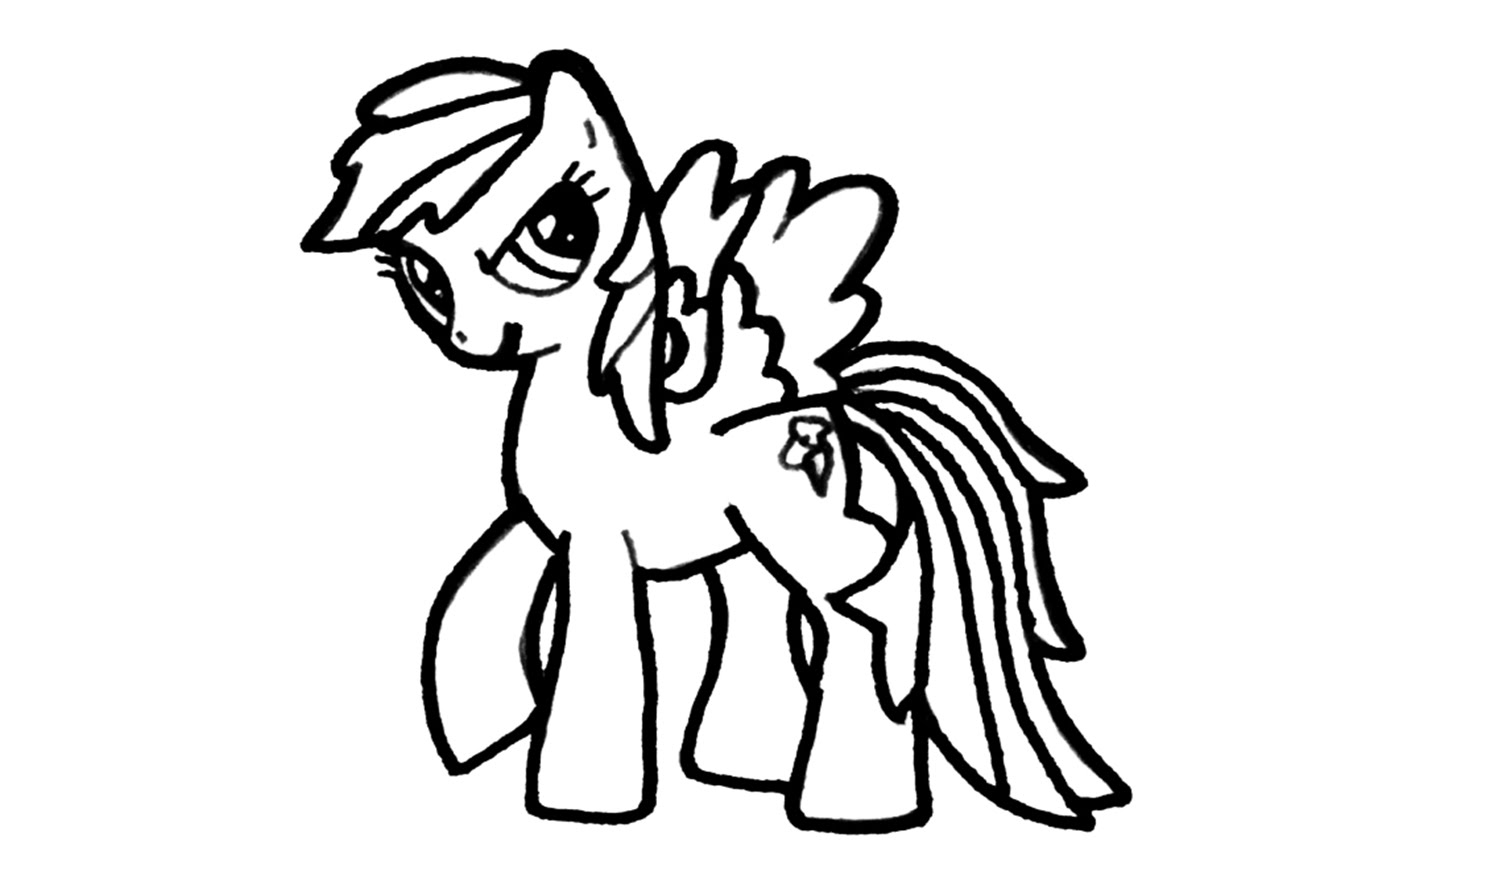 and share my little pony rainbow dash chromies ponies fail my A76 Button Cell Battery my little pony drawing rainbow dash at getdrawings free for